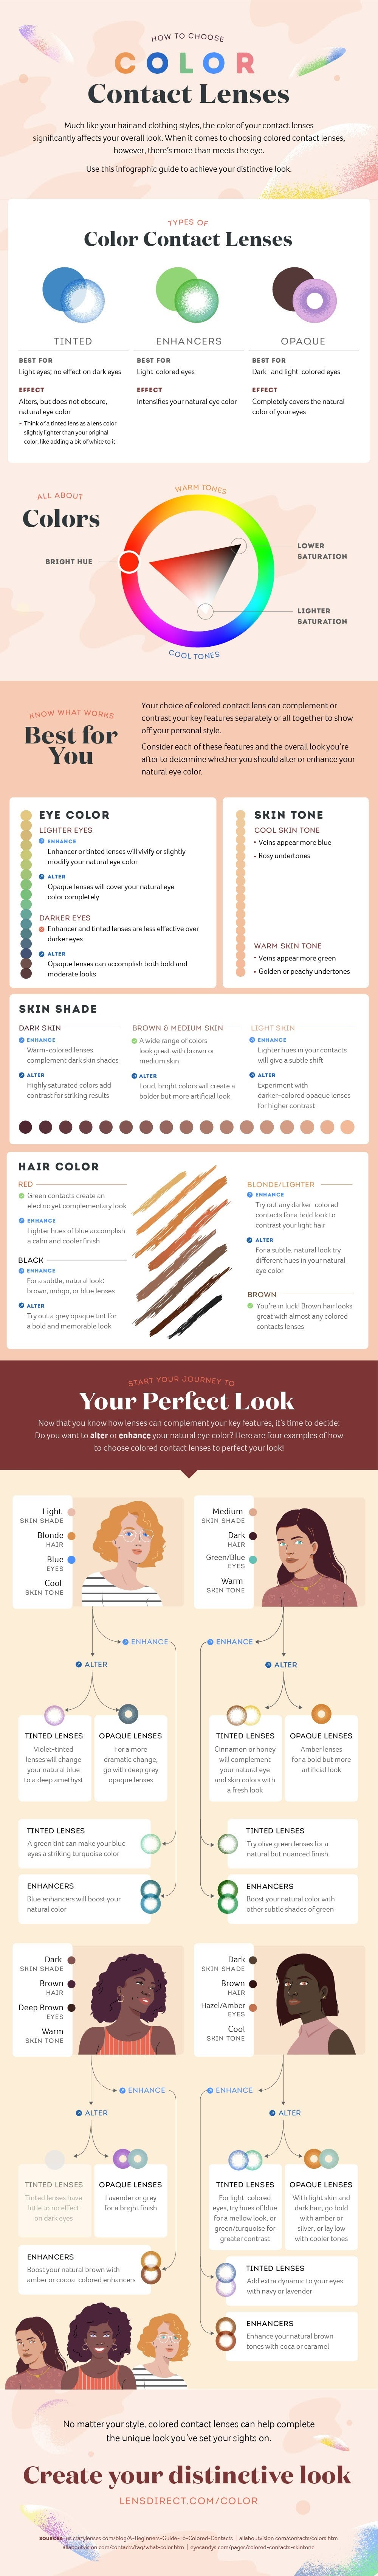 How to Choose Color Contact Lenses #infographic